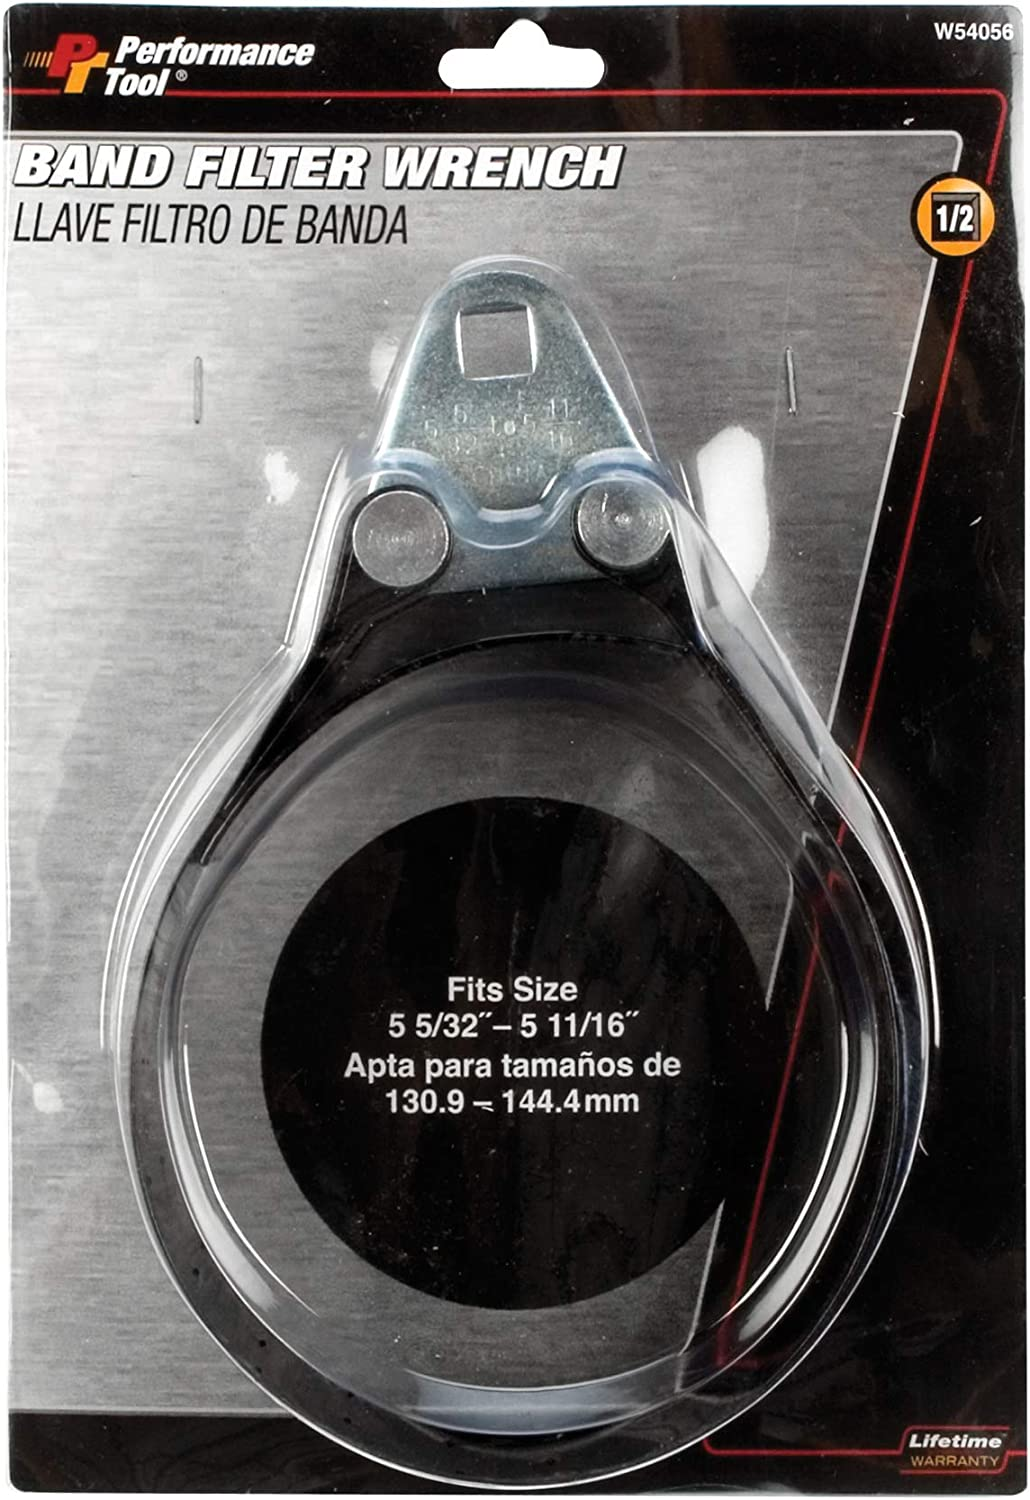 3 to 3-3//4 Performance Tool W54050 Truck /& Tractor Oil Filter Wrench